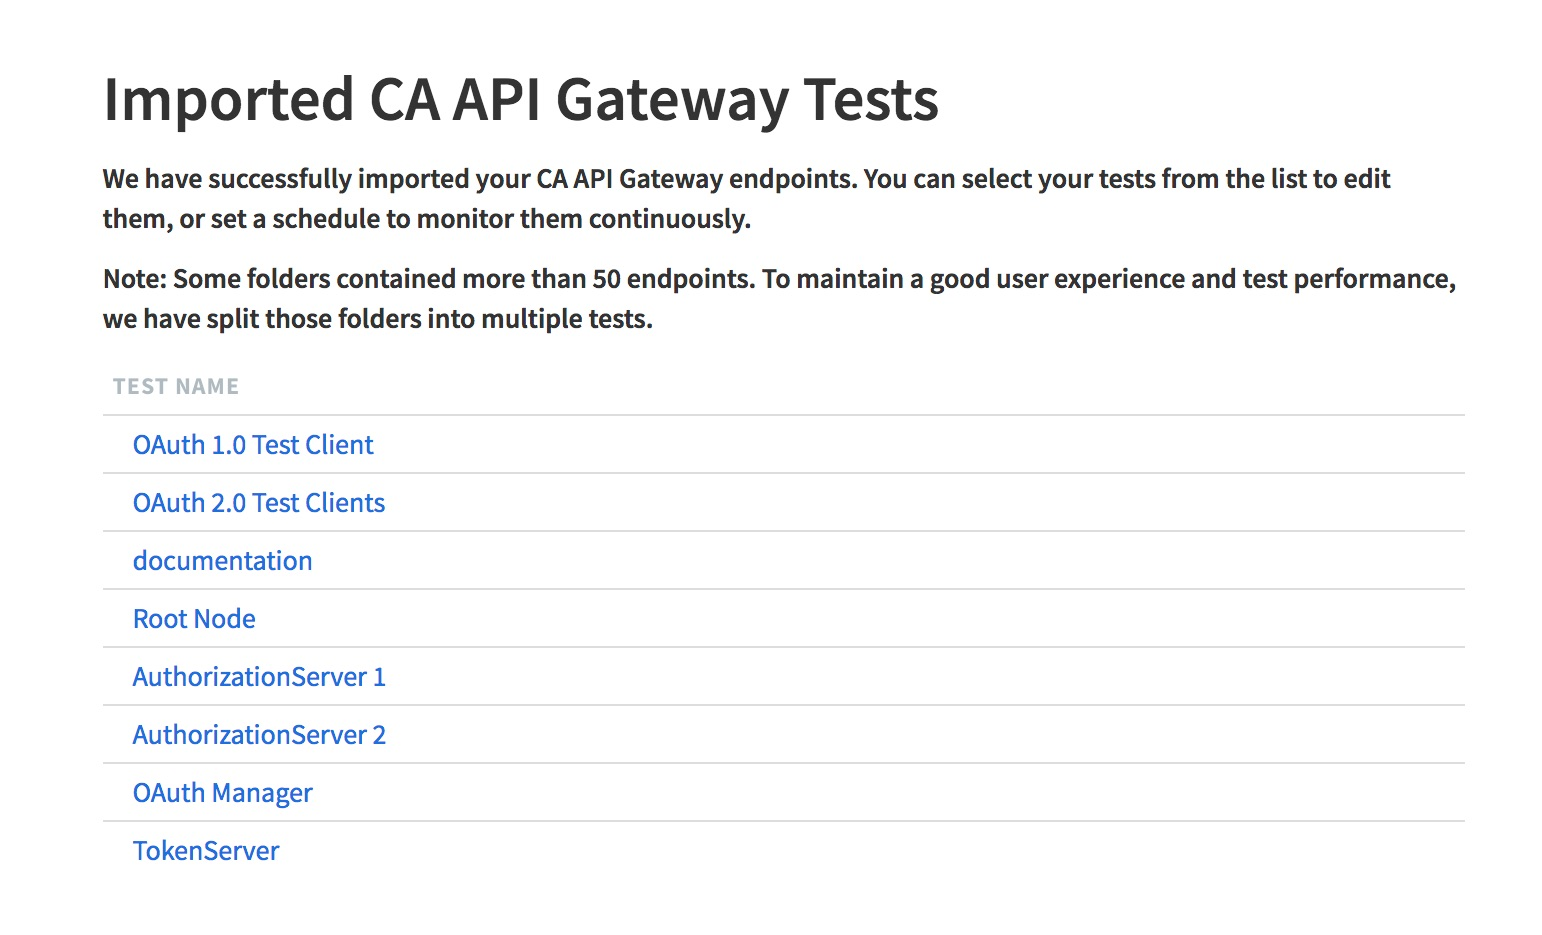 Runscope CA API Gateway import success page, showing the same folders that were selected in the previous image as succesfully imported, and linking to their Runscope tests